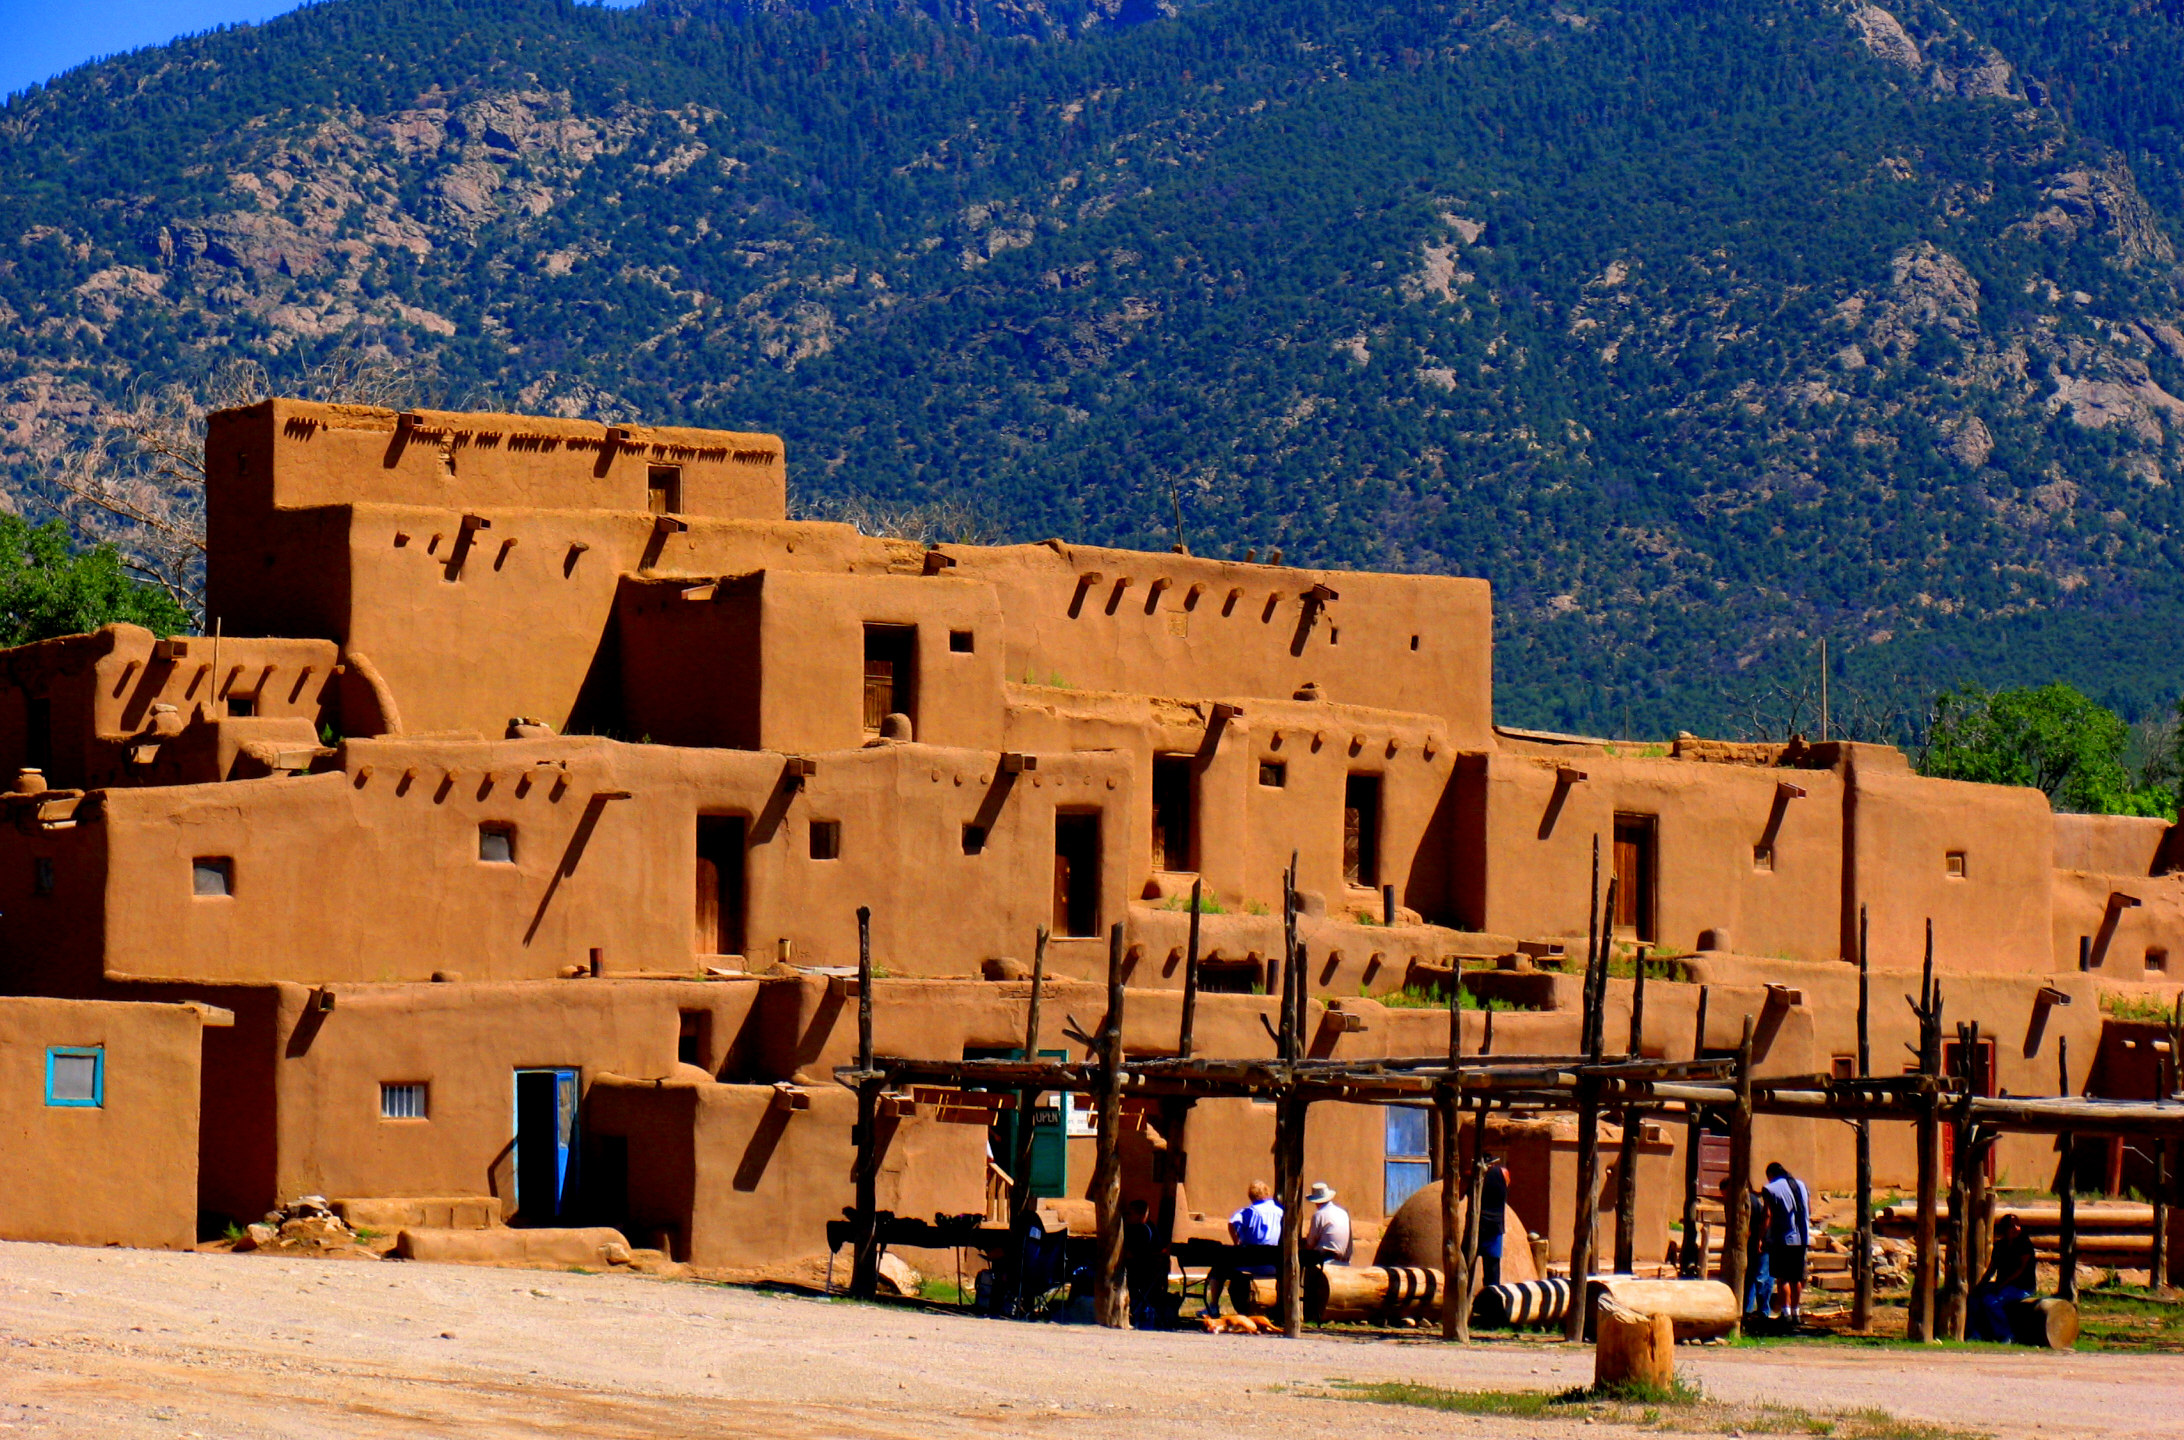 35 magical photos of taos pueblo new mexico places boomsbeat - Pueblo adobe houses property ...